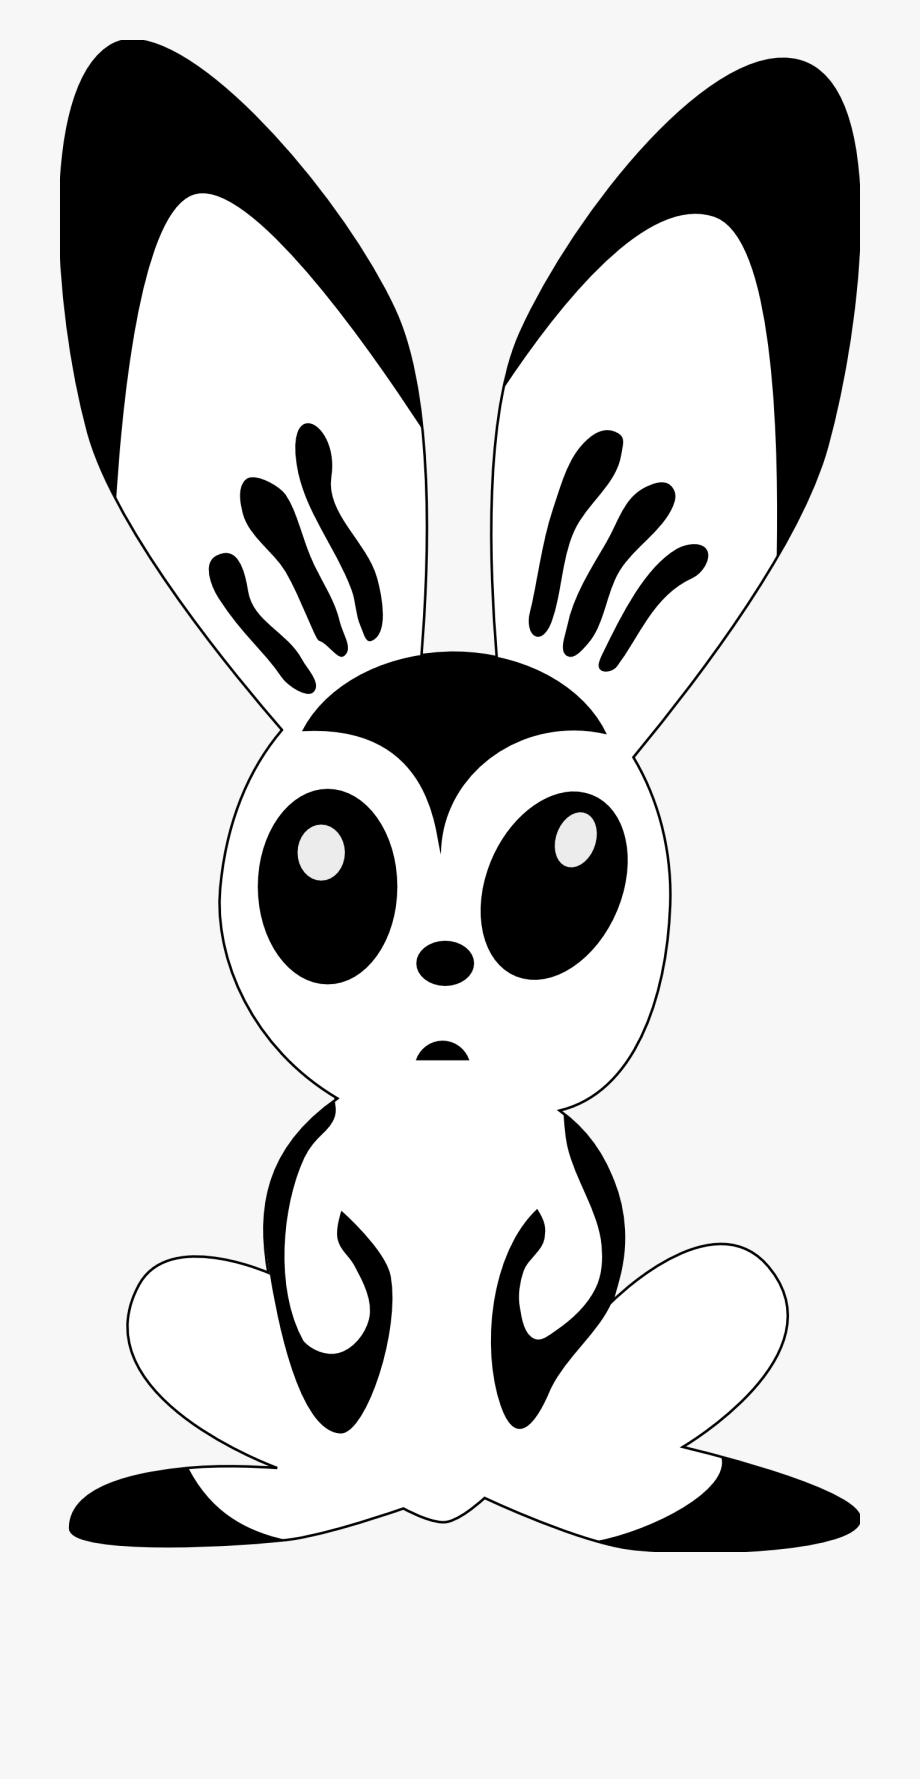 Weekend clipart black and white png royalty free library Clip Art Hare By Rones Rabbit Black White Line - Rabbit ... png royalty free library